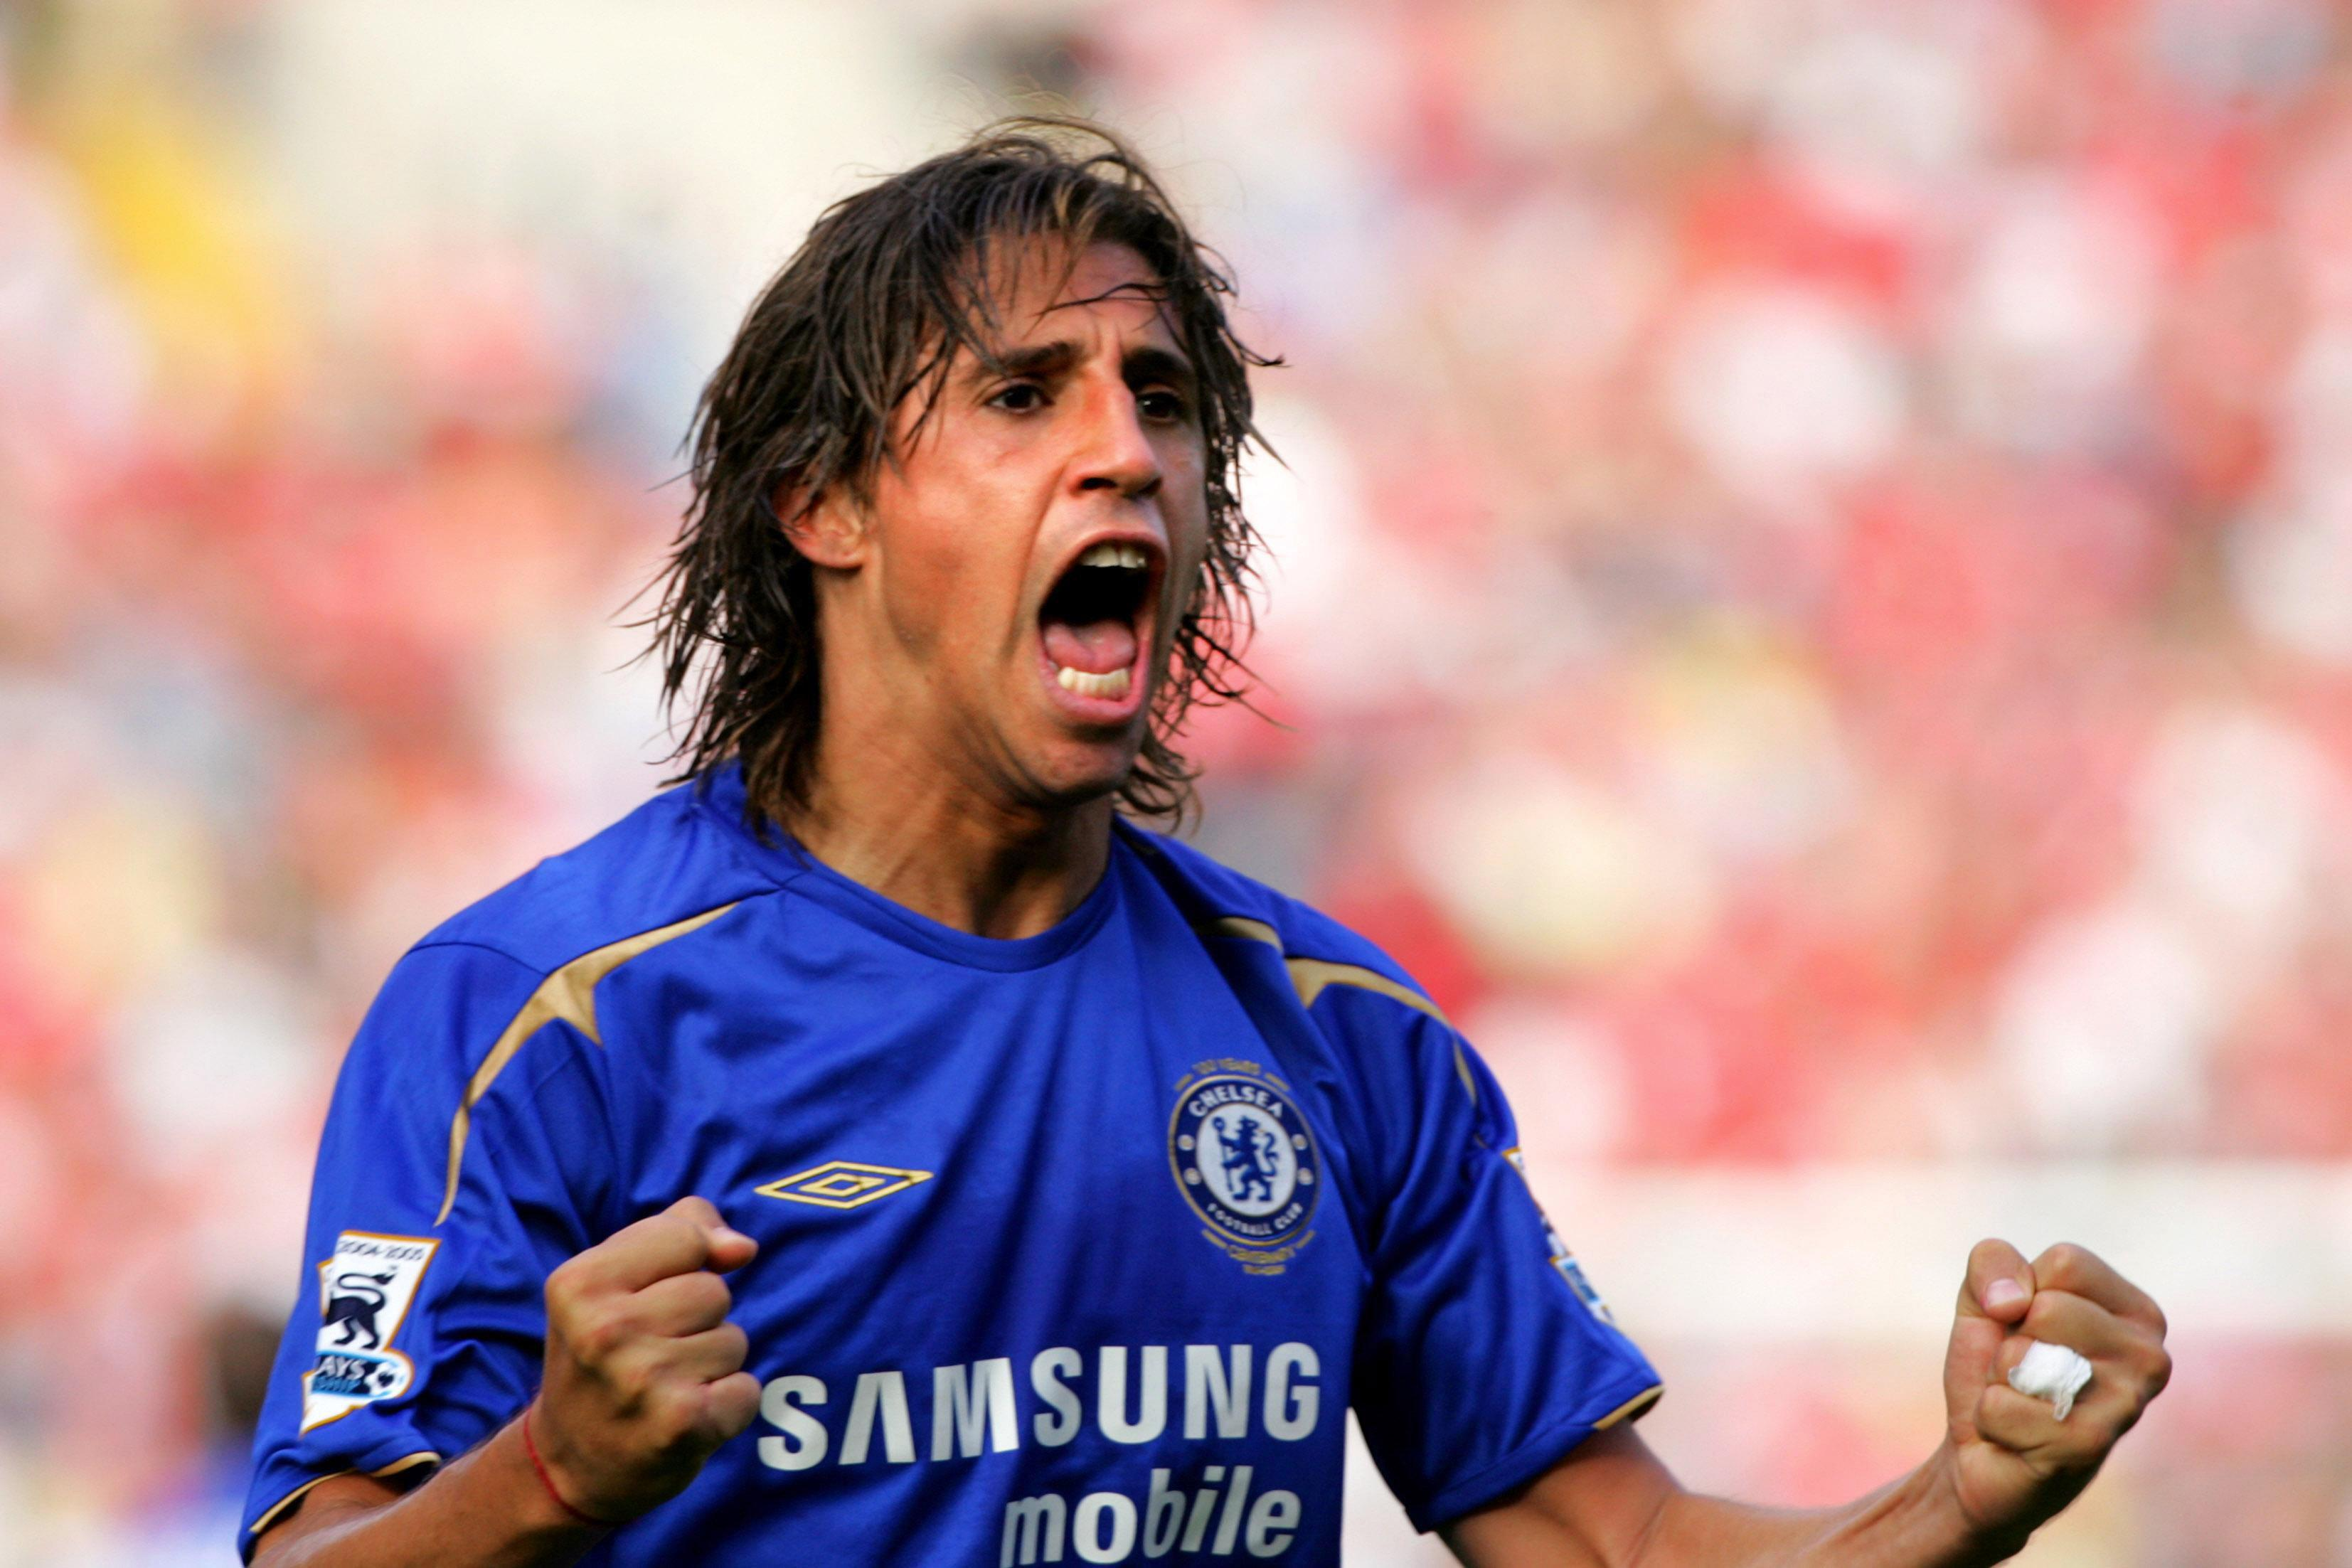 Crespo's spell at Chelsea never really reflected his brilliance in Serie A